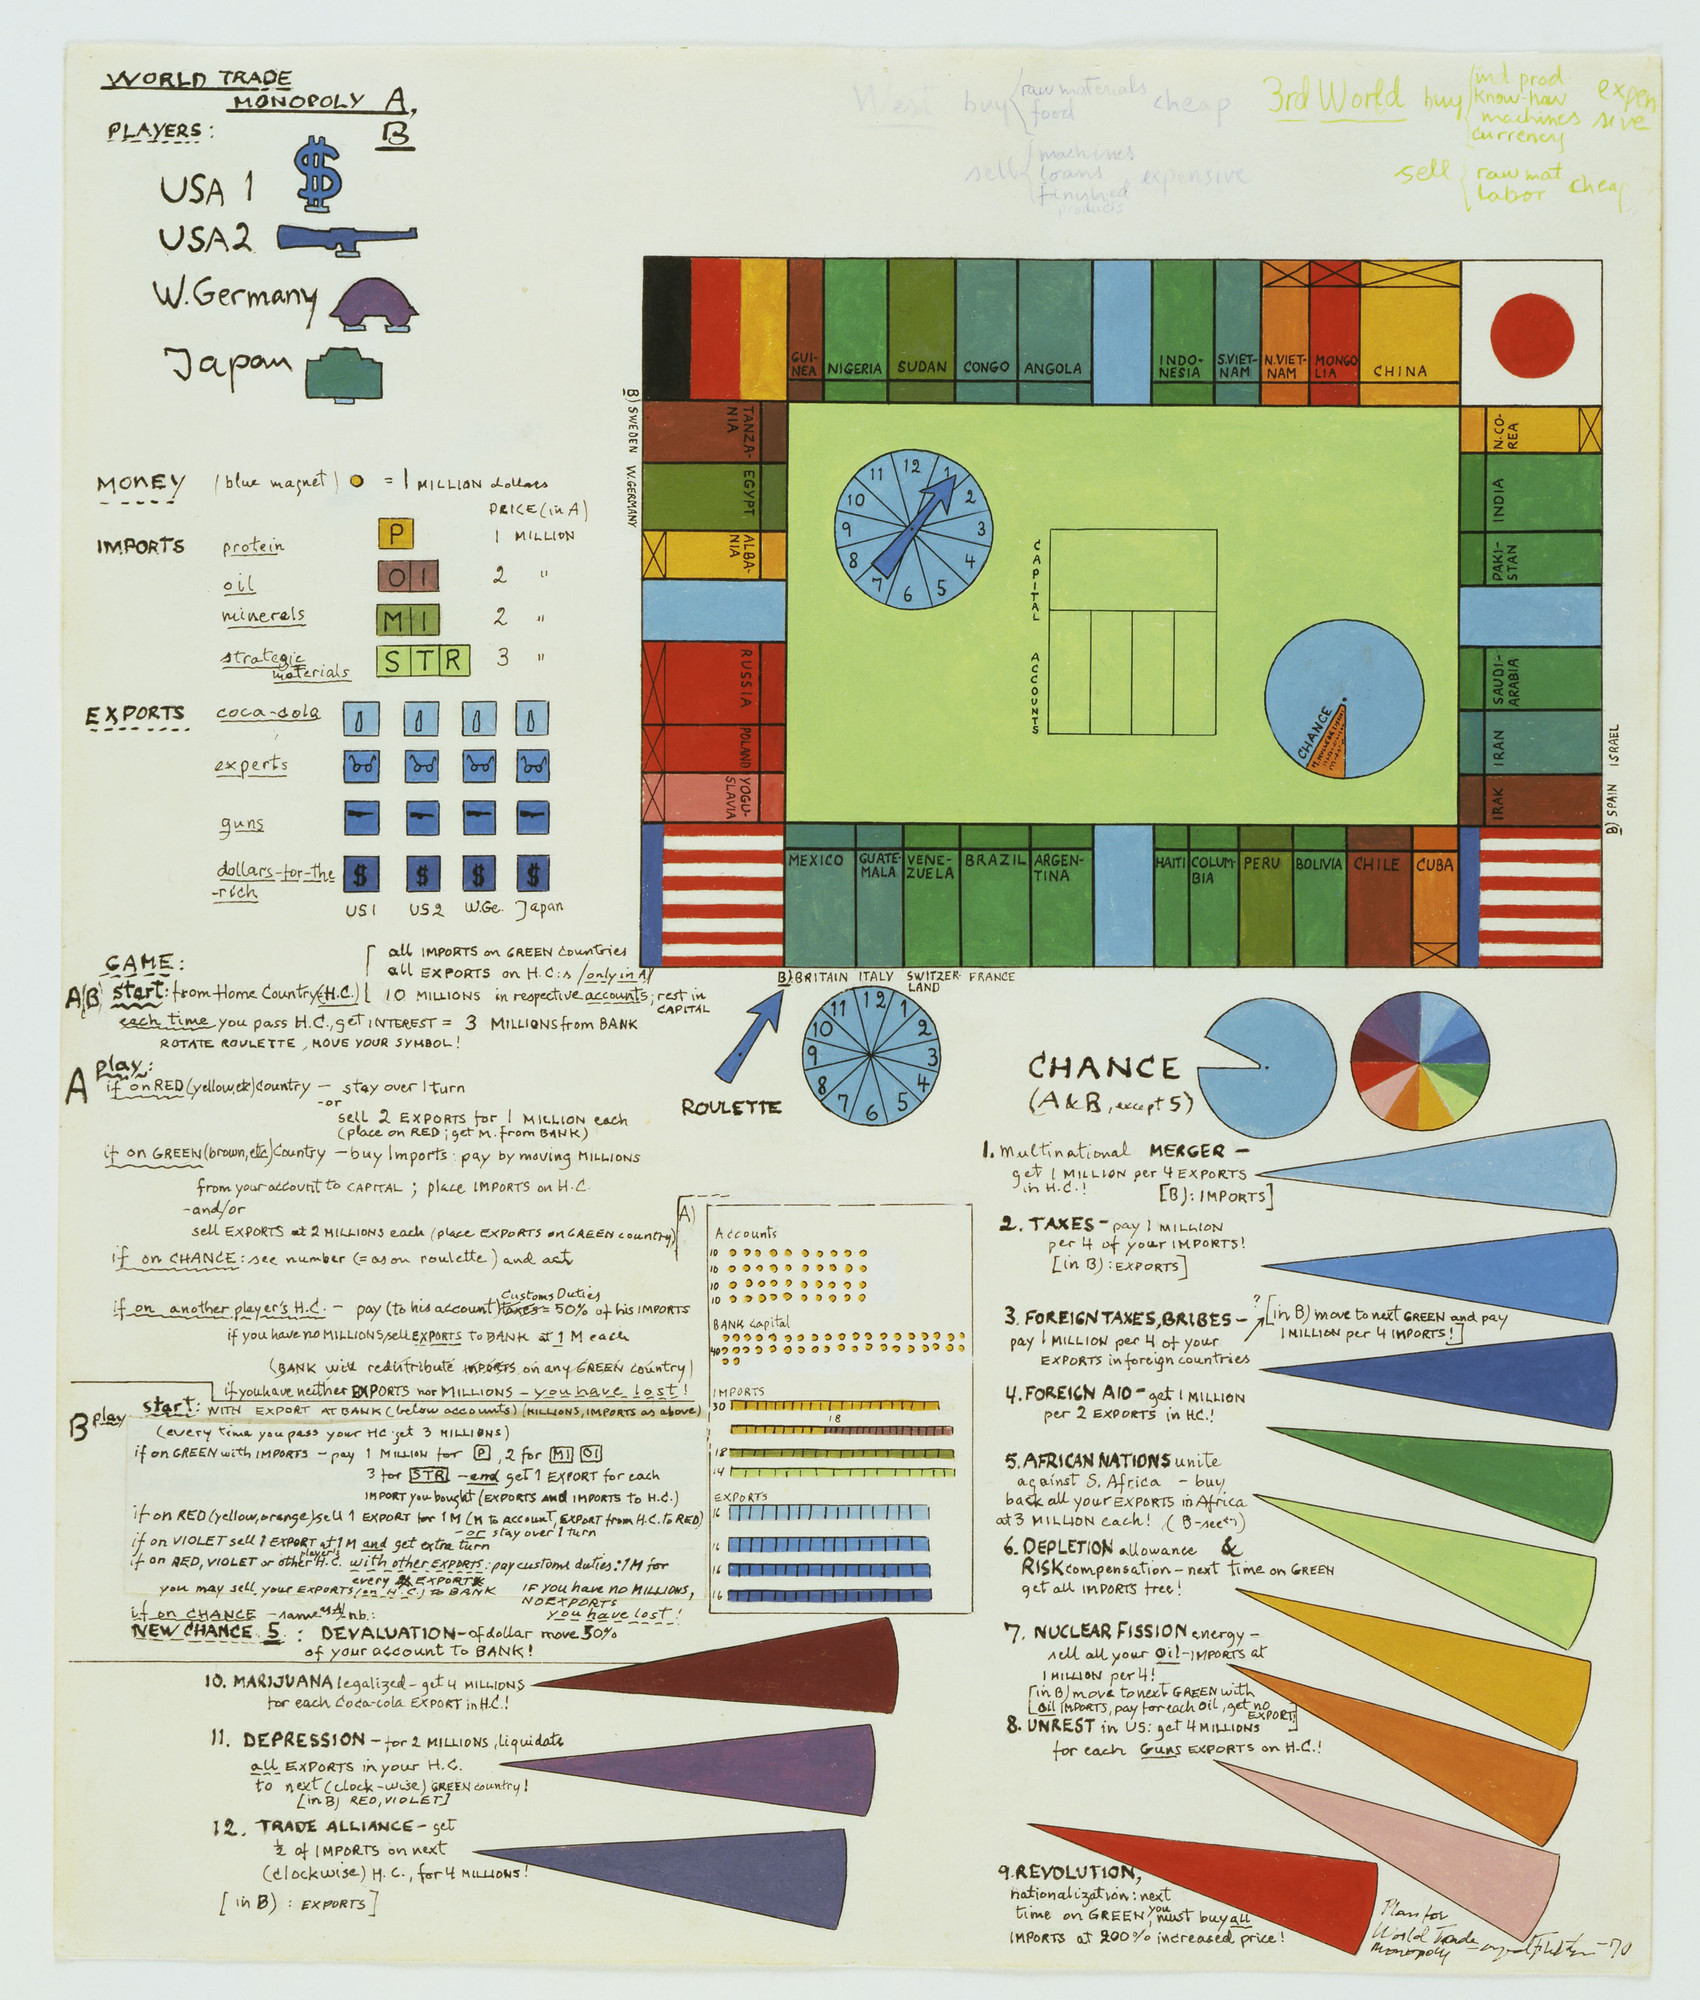 Öyvind Fahlström. Plan for World Trade Monopoly. 1970. Cut-and-pasted paper with synthetic polymer paint, ink, and colored pencil on paper. 16 5/8 × 14″ (42 × 35.3 cm). The Museum of Modern Art, New York. Mrs. Bertram Smith Fund © 2009 Öyvind Fahlström / Artists Rights Society (ARS), New York / VG Bild-Kunst, Germany.